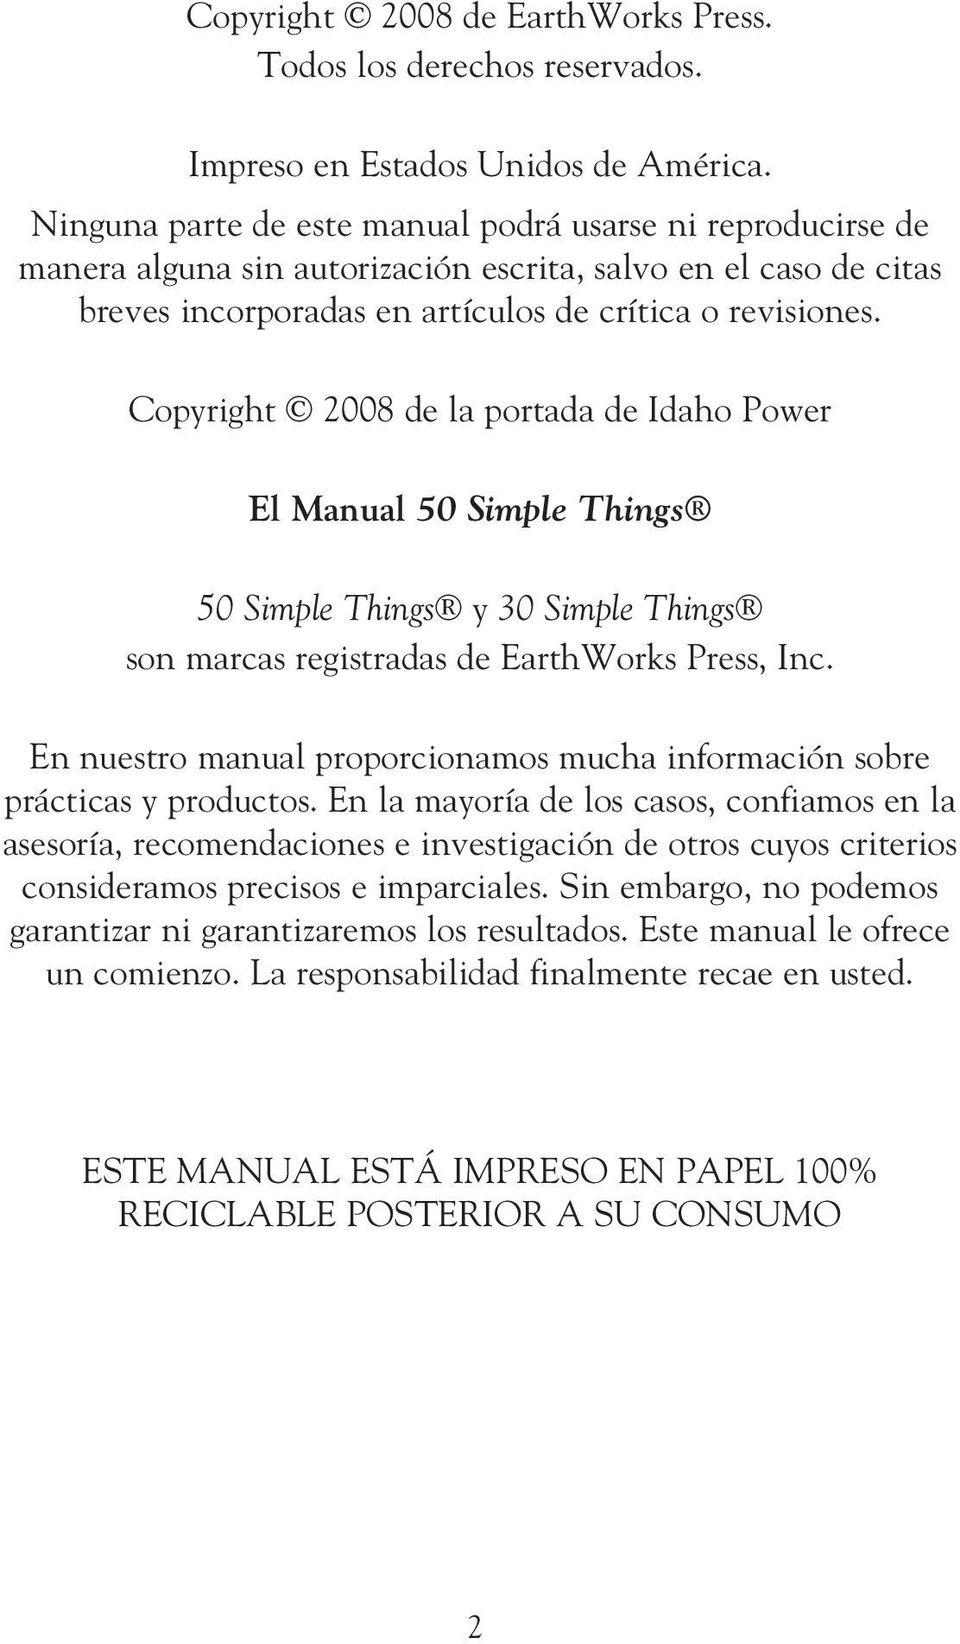 Copyright 2008 de la portada de Idaho Power El Manual 50 Simple Things 50 Simple Things y 30 Simple Things son marcas registradas de EarthWorks Press, Inc.